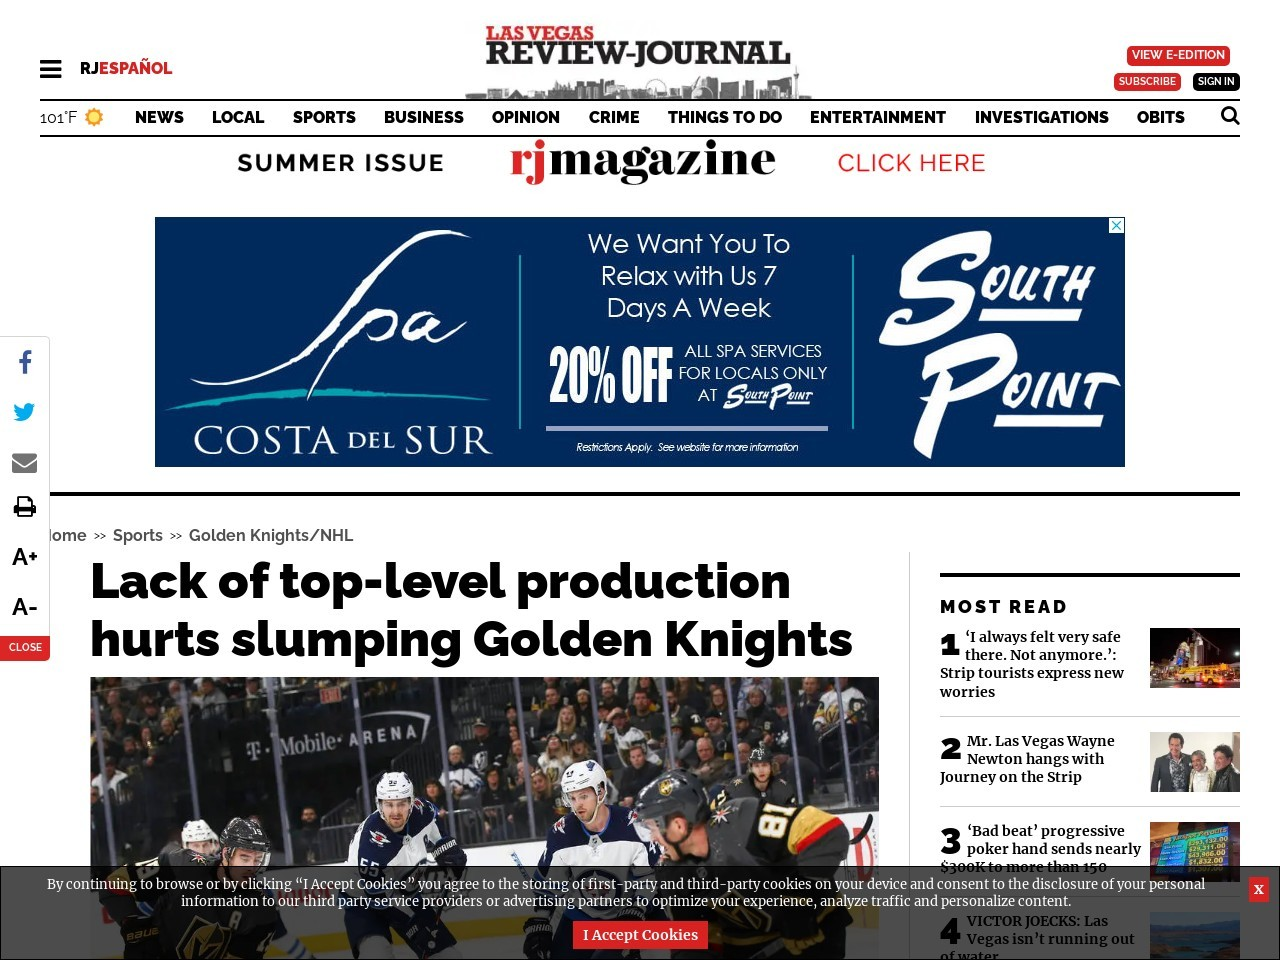 Lack of top-level production hurts slumping Golden Knights